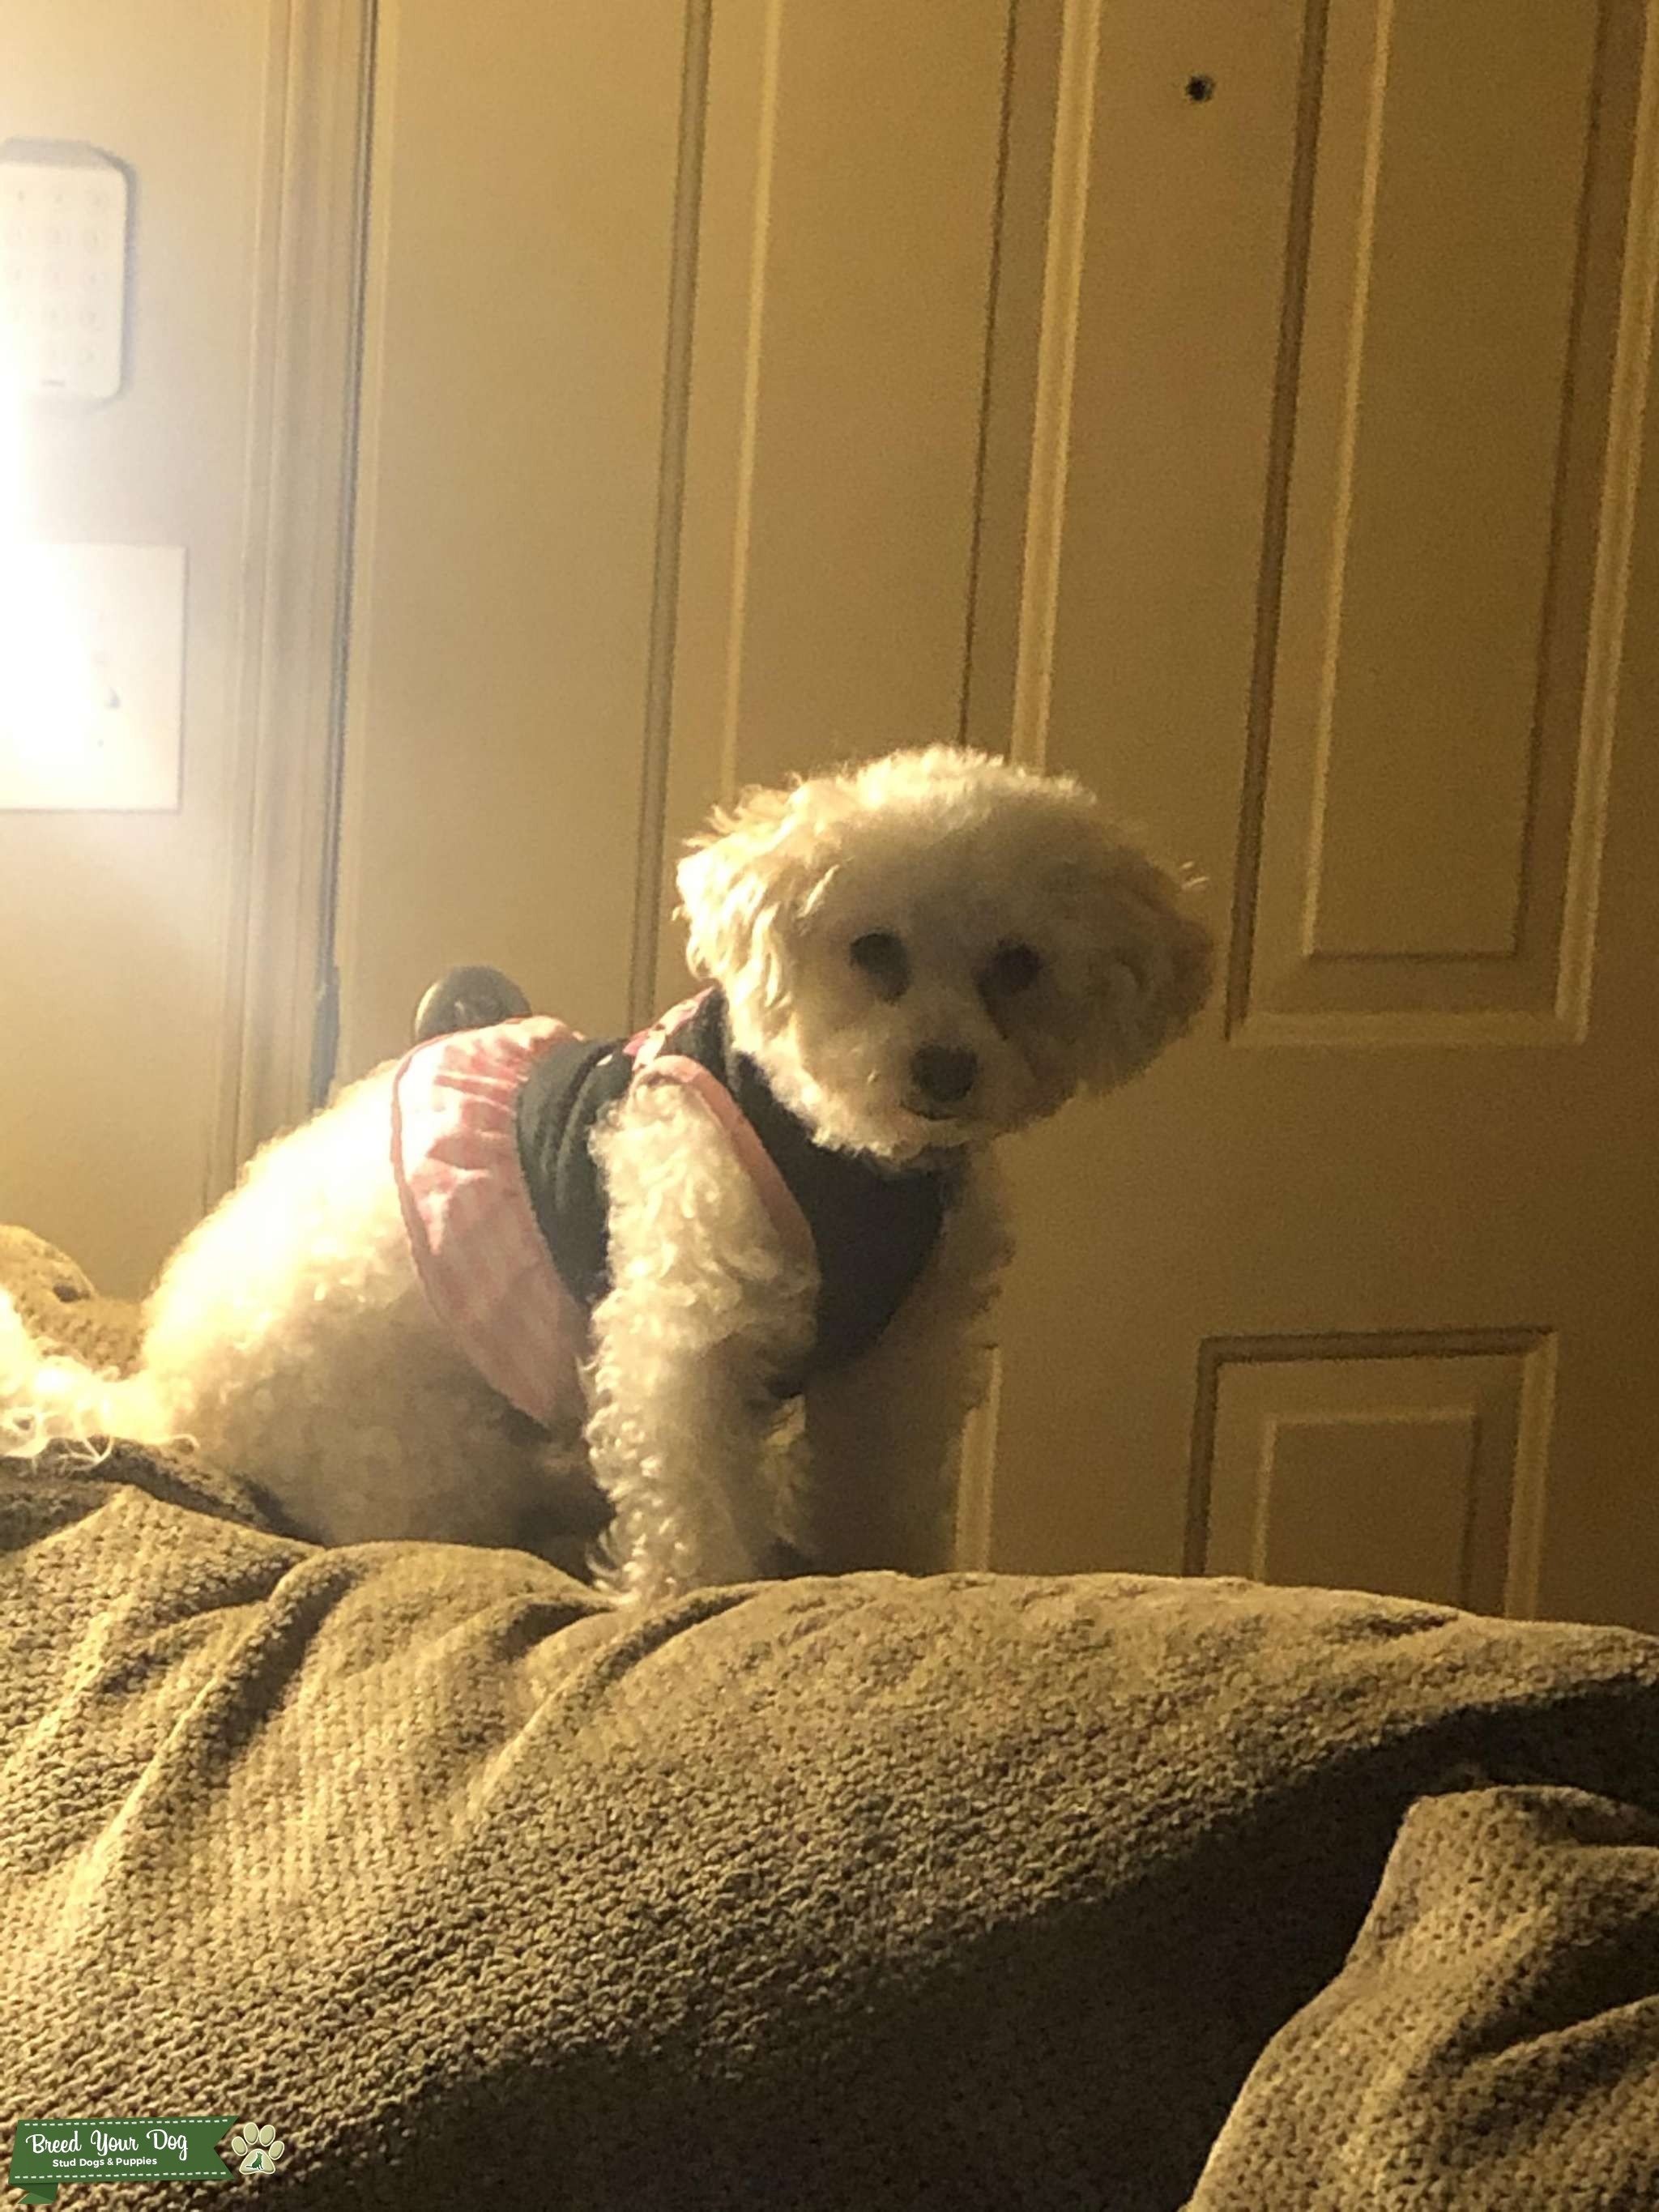 ISO Bichon frise/bolognese/small fluffy dogs Listing Image Big